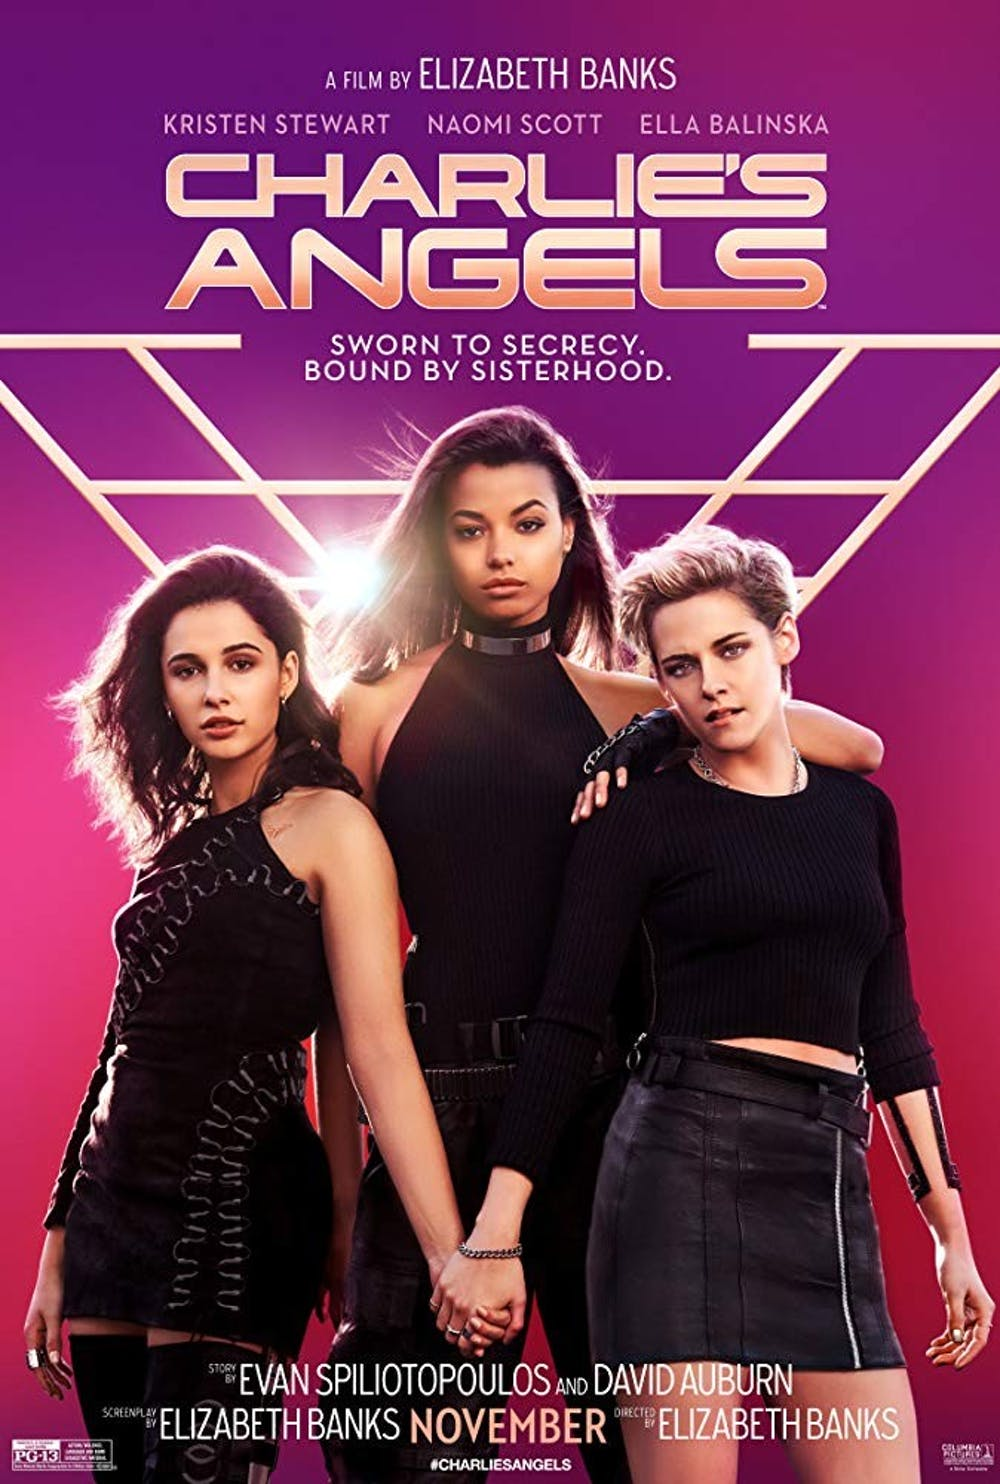 Review: 'Charlie's Angels' are back with a new adaptation on a classic story